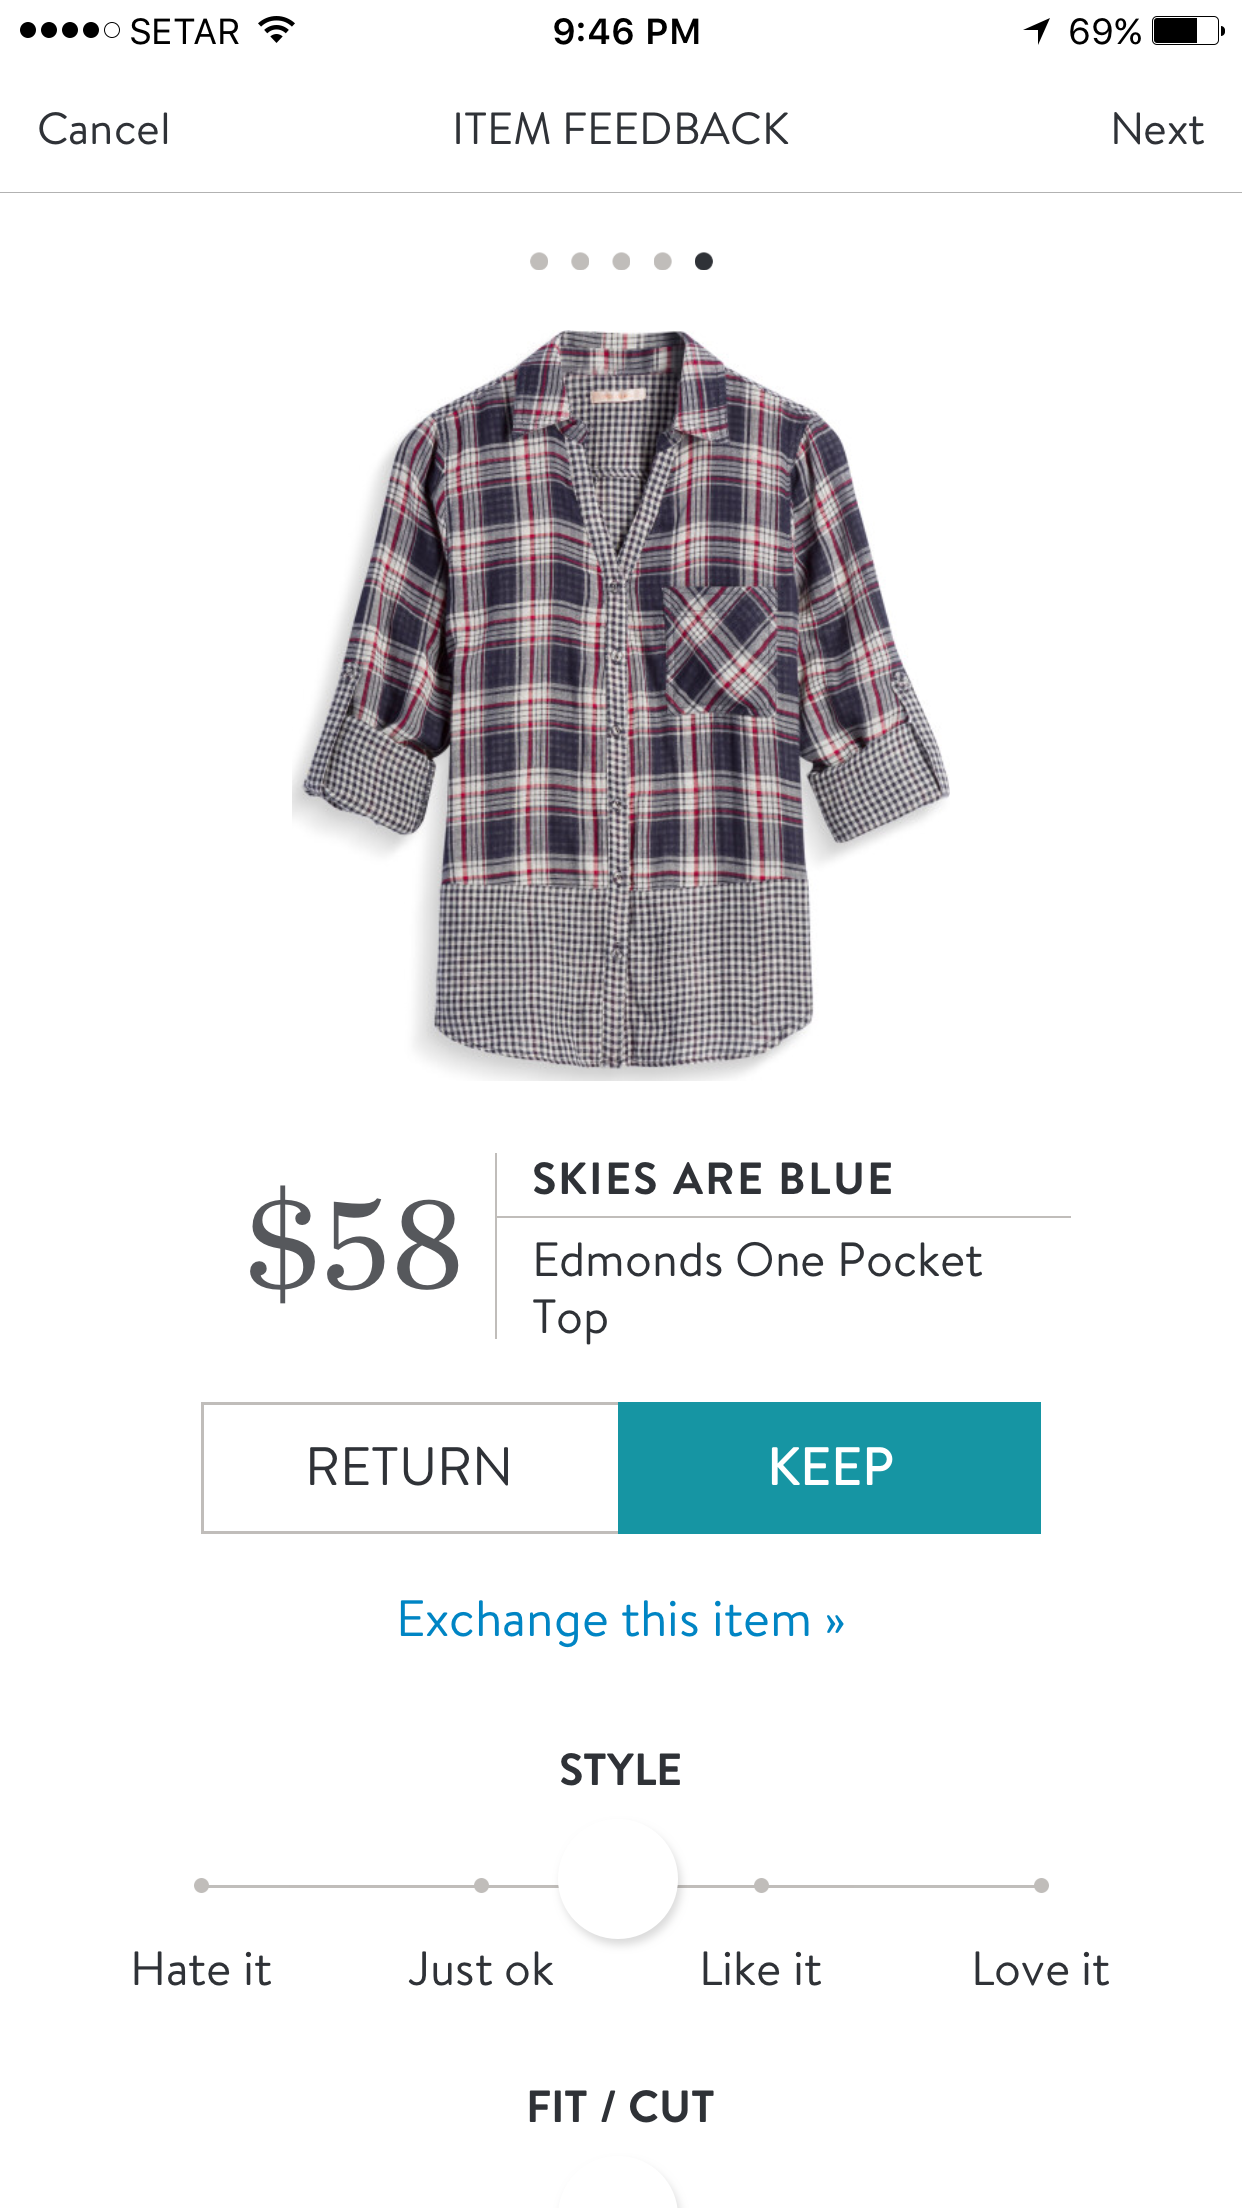 I love Stitch Fix! A personalized styling service and it's